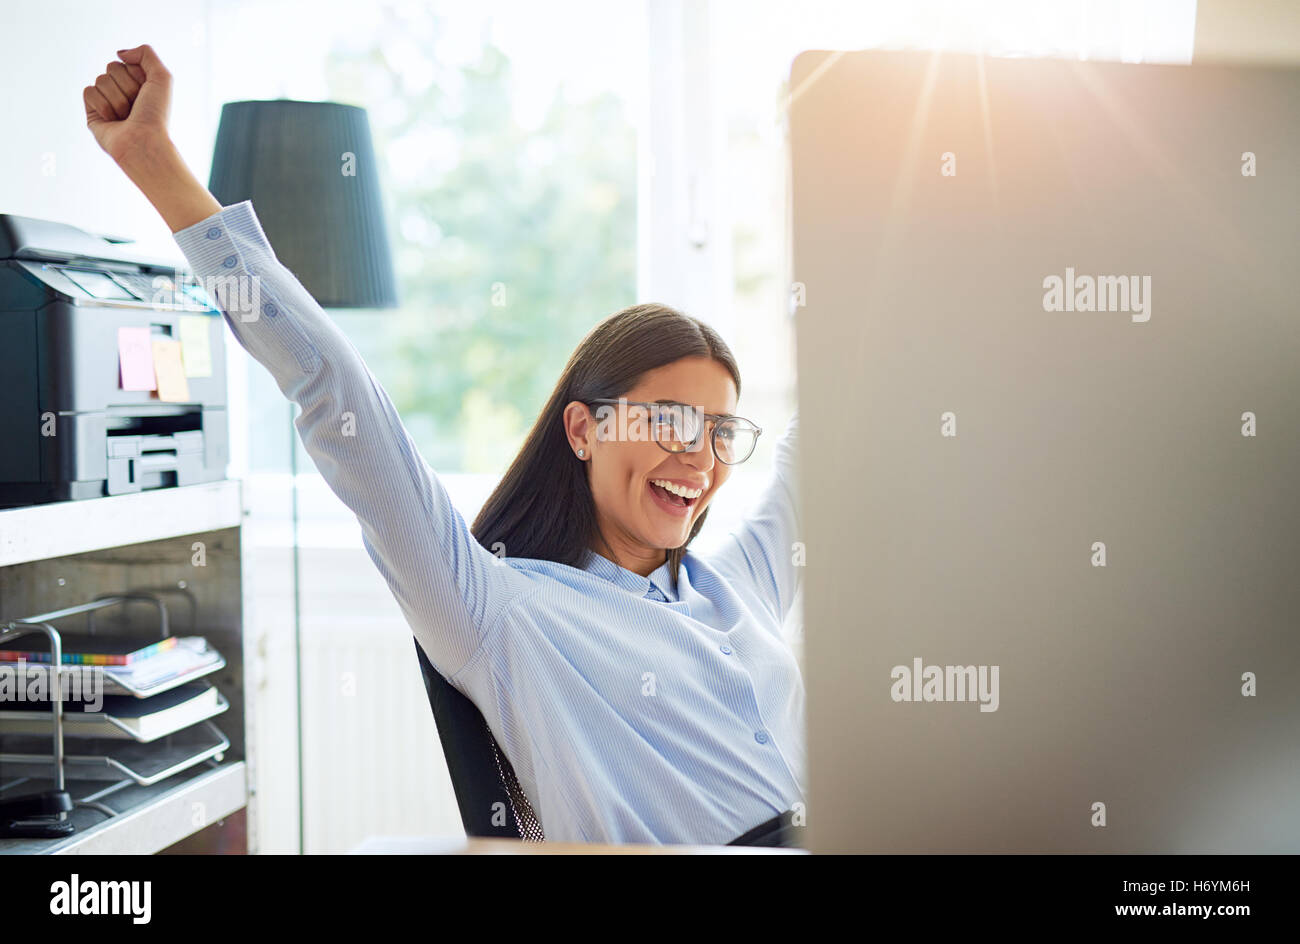 Joyous female entrepreneur in small office with extended arms as if to celebrate something wonderful such as a business - Stock Image